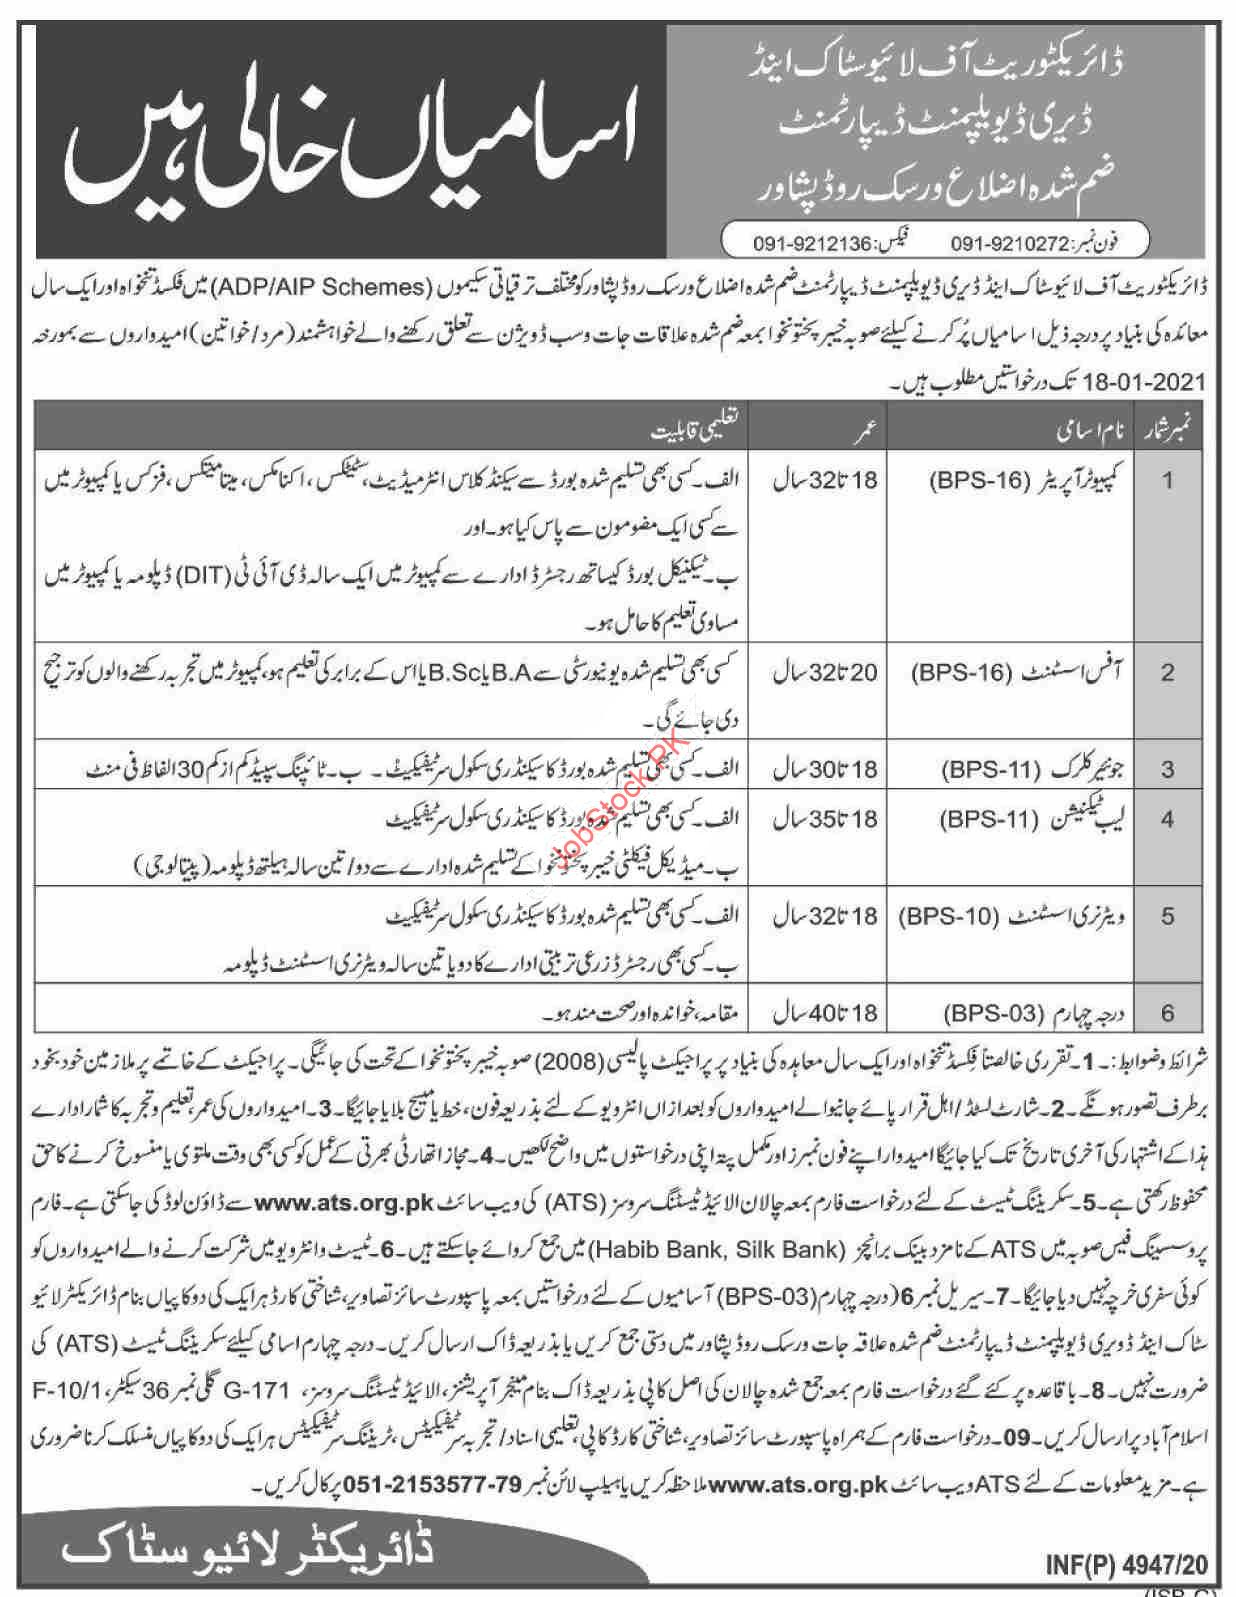 Livestock & Dairy Development Department Peshawar Jobs 2021 Latest